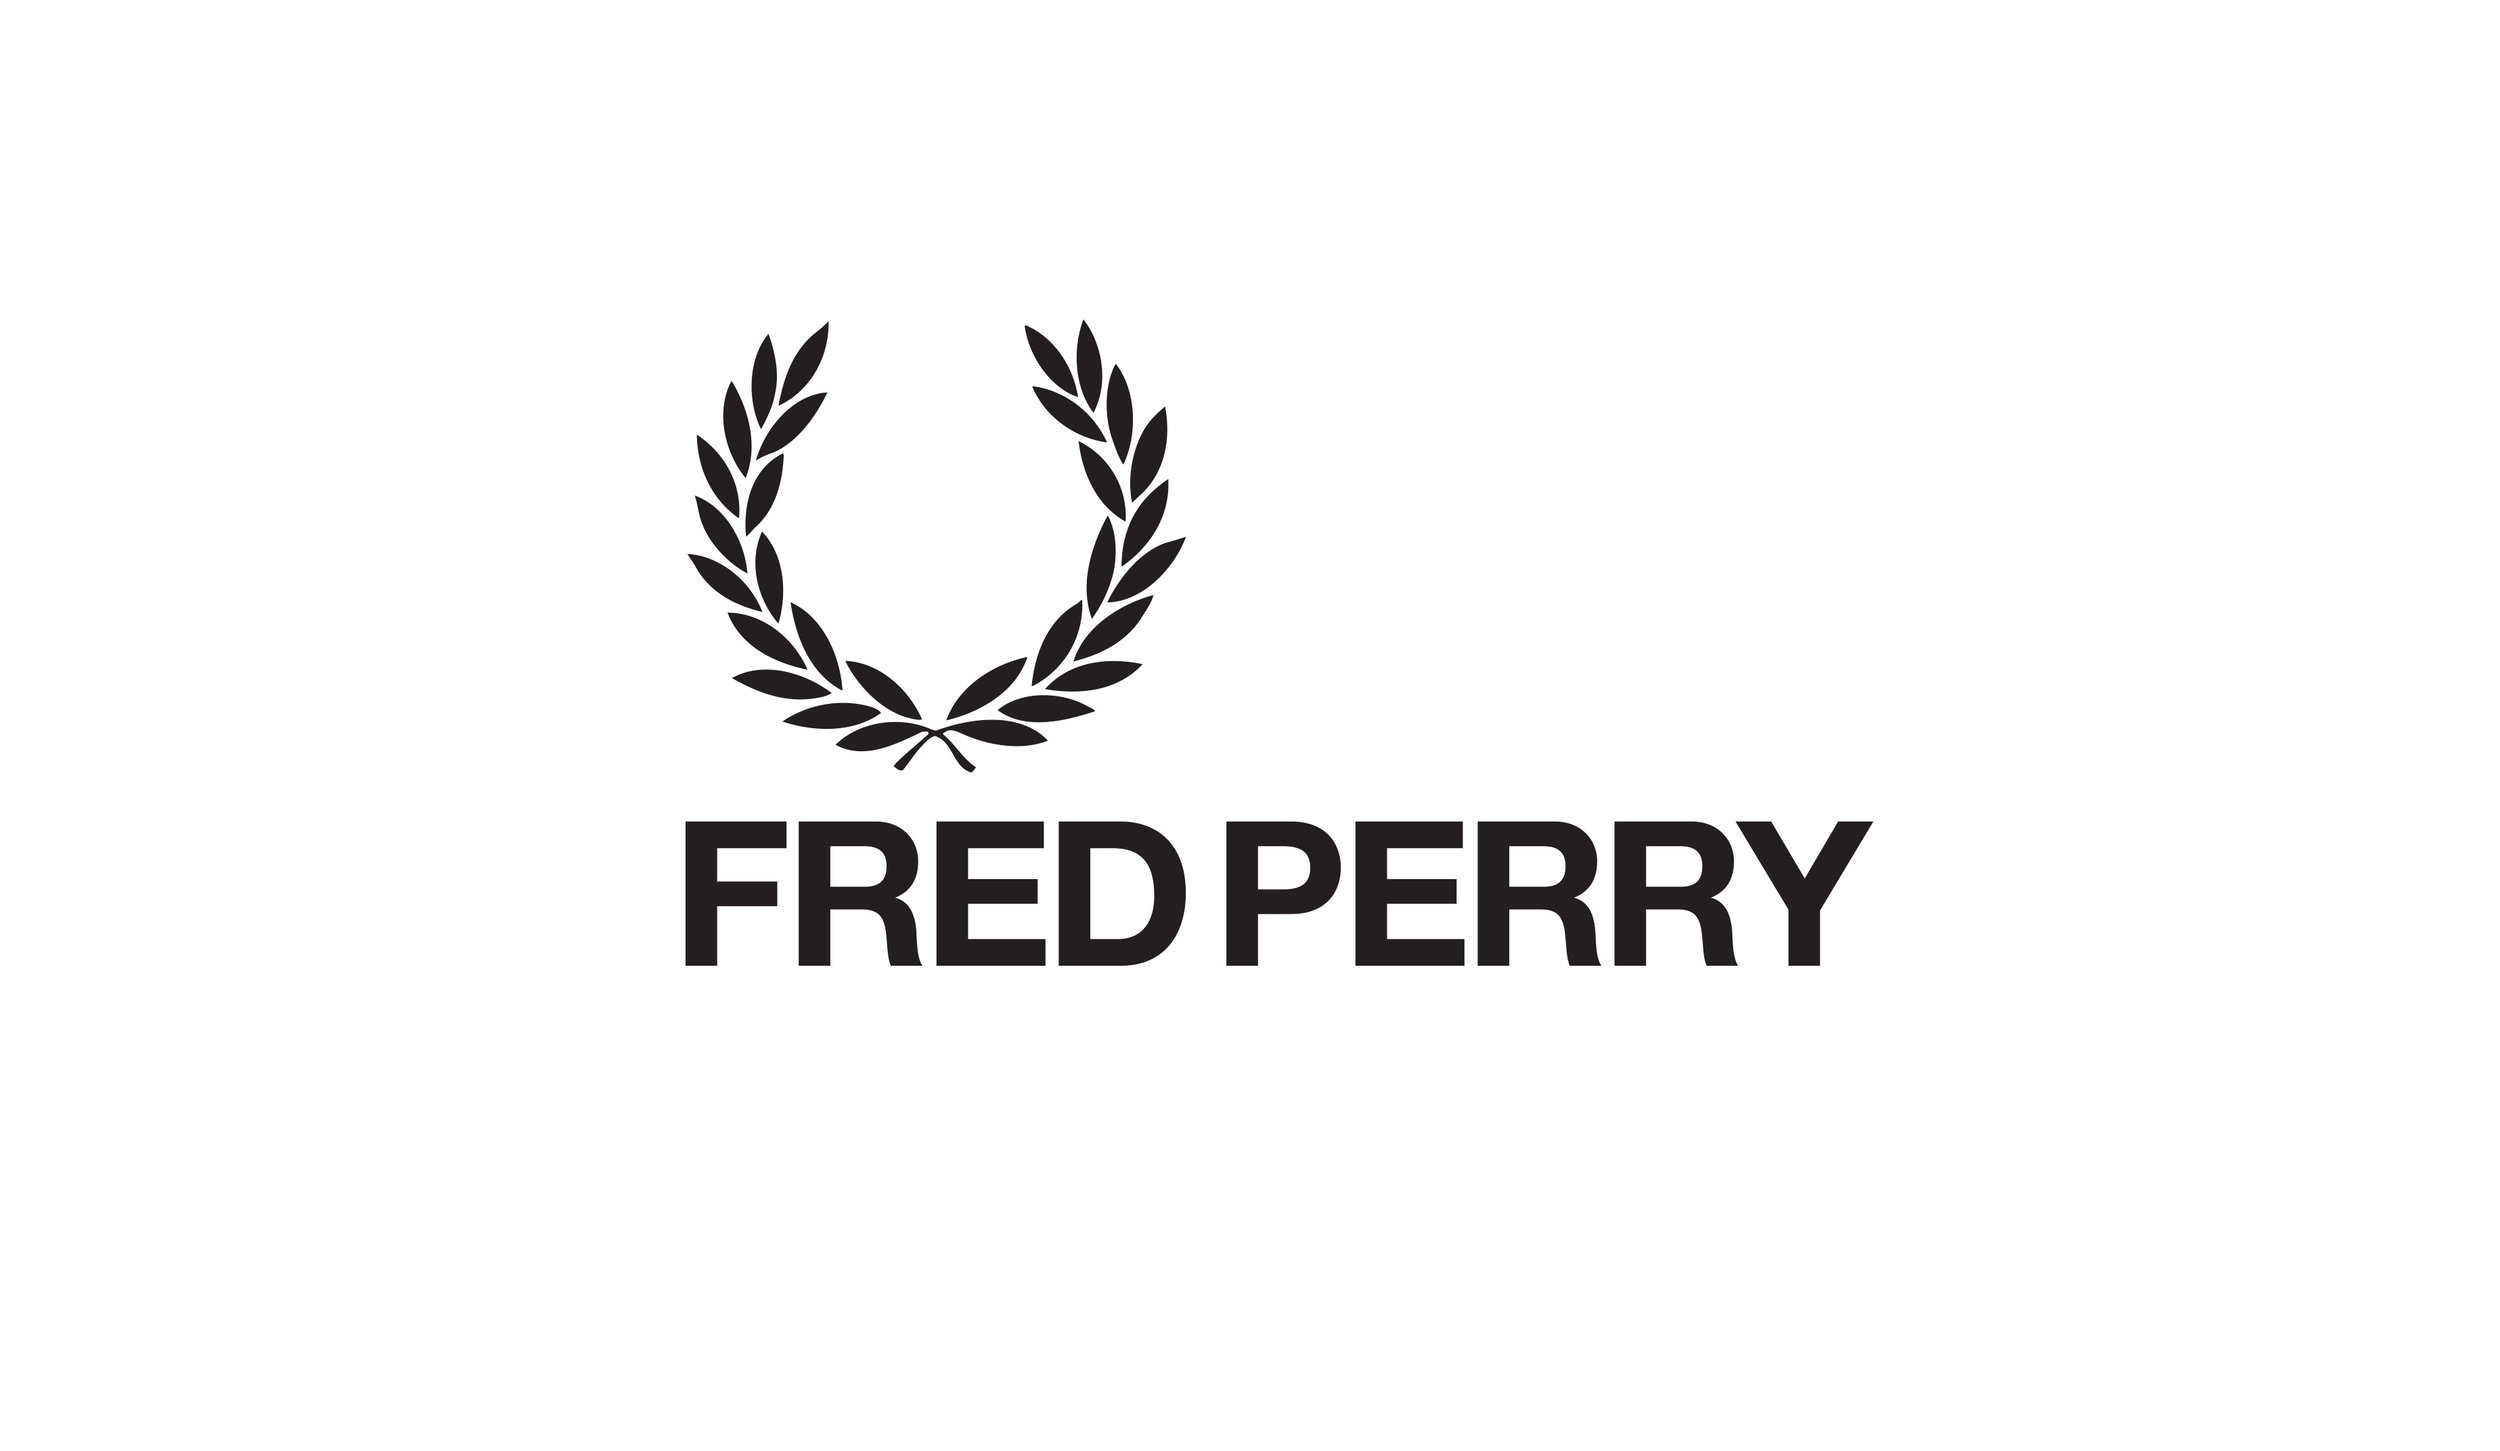 fred-perry.jpg